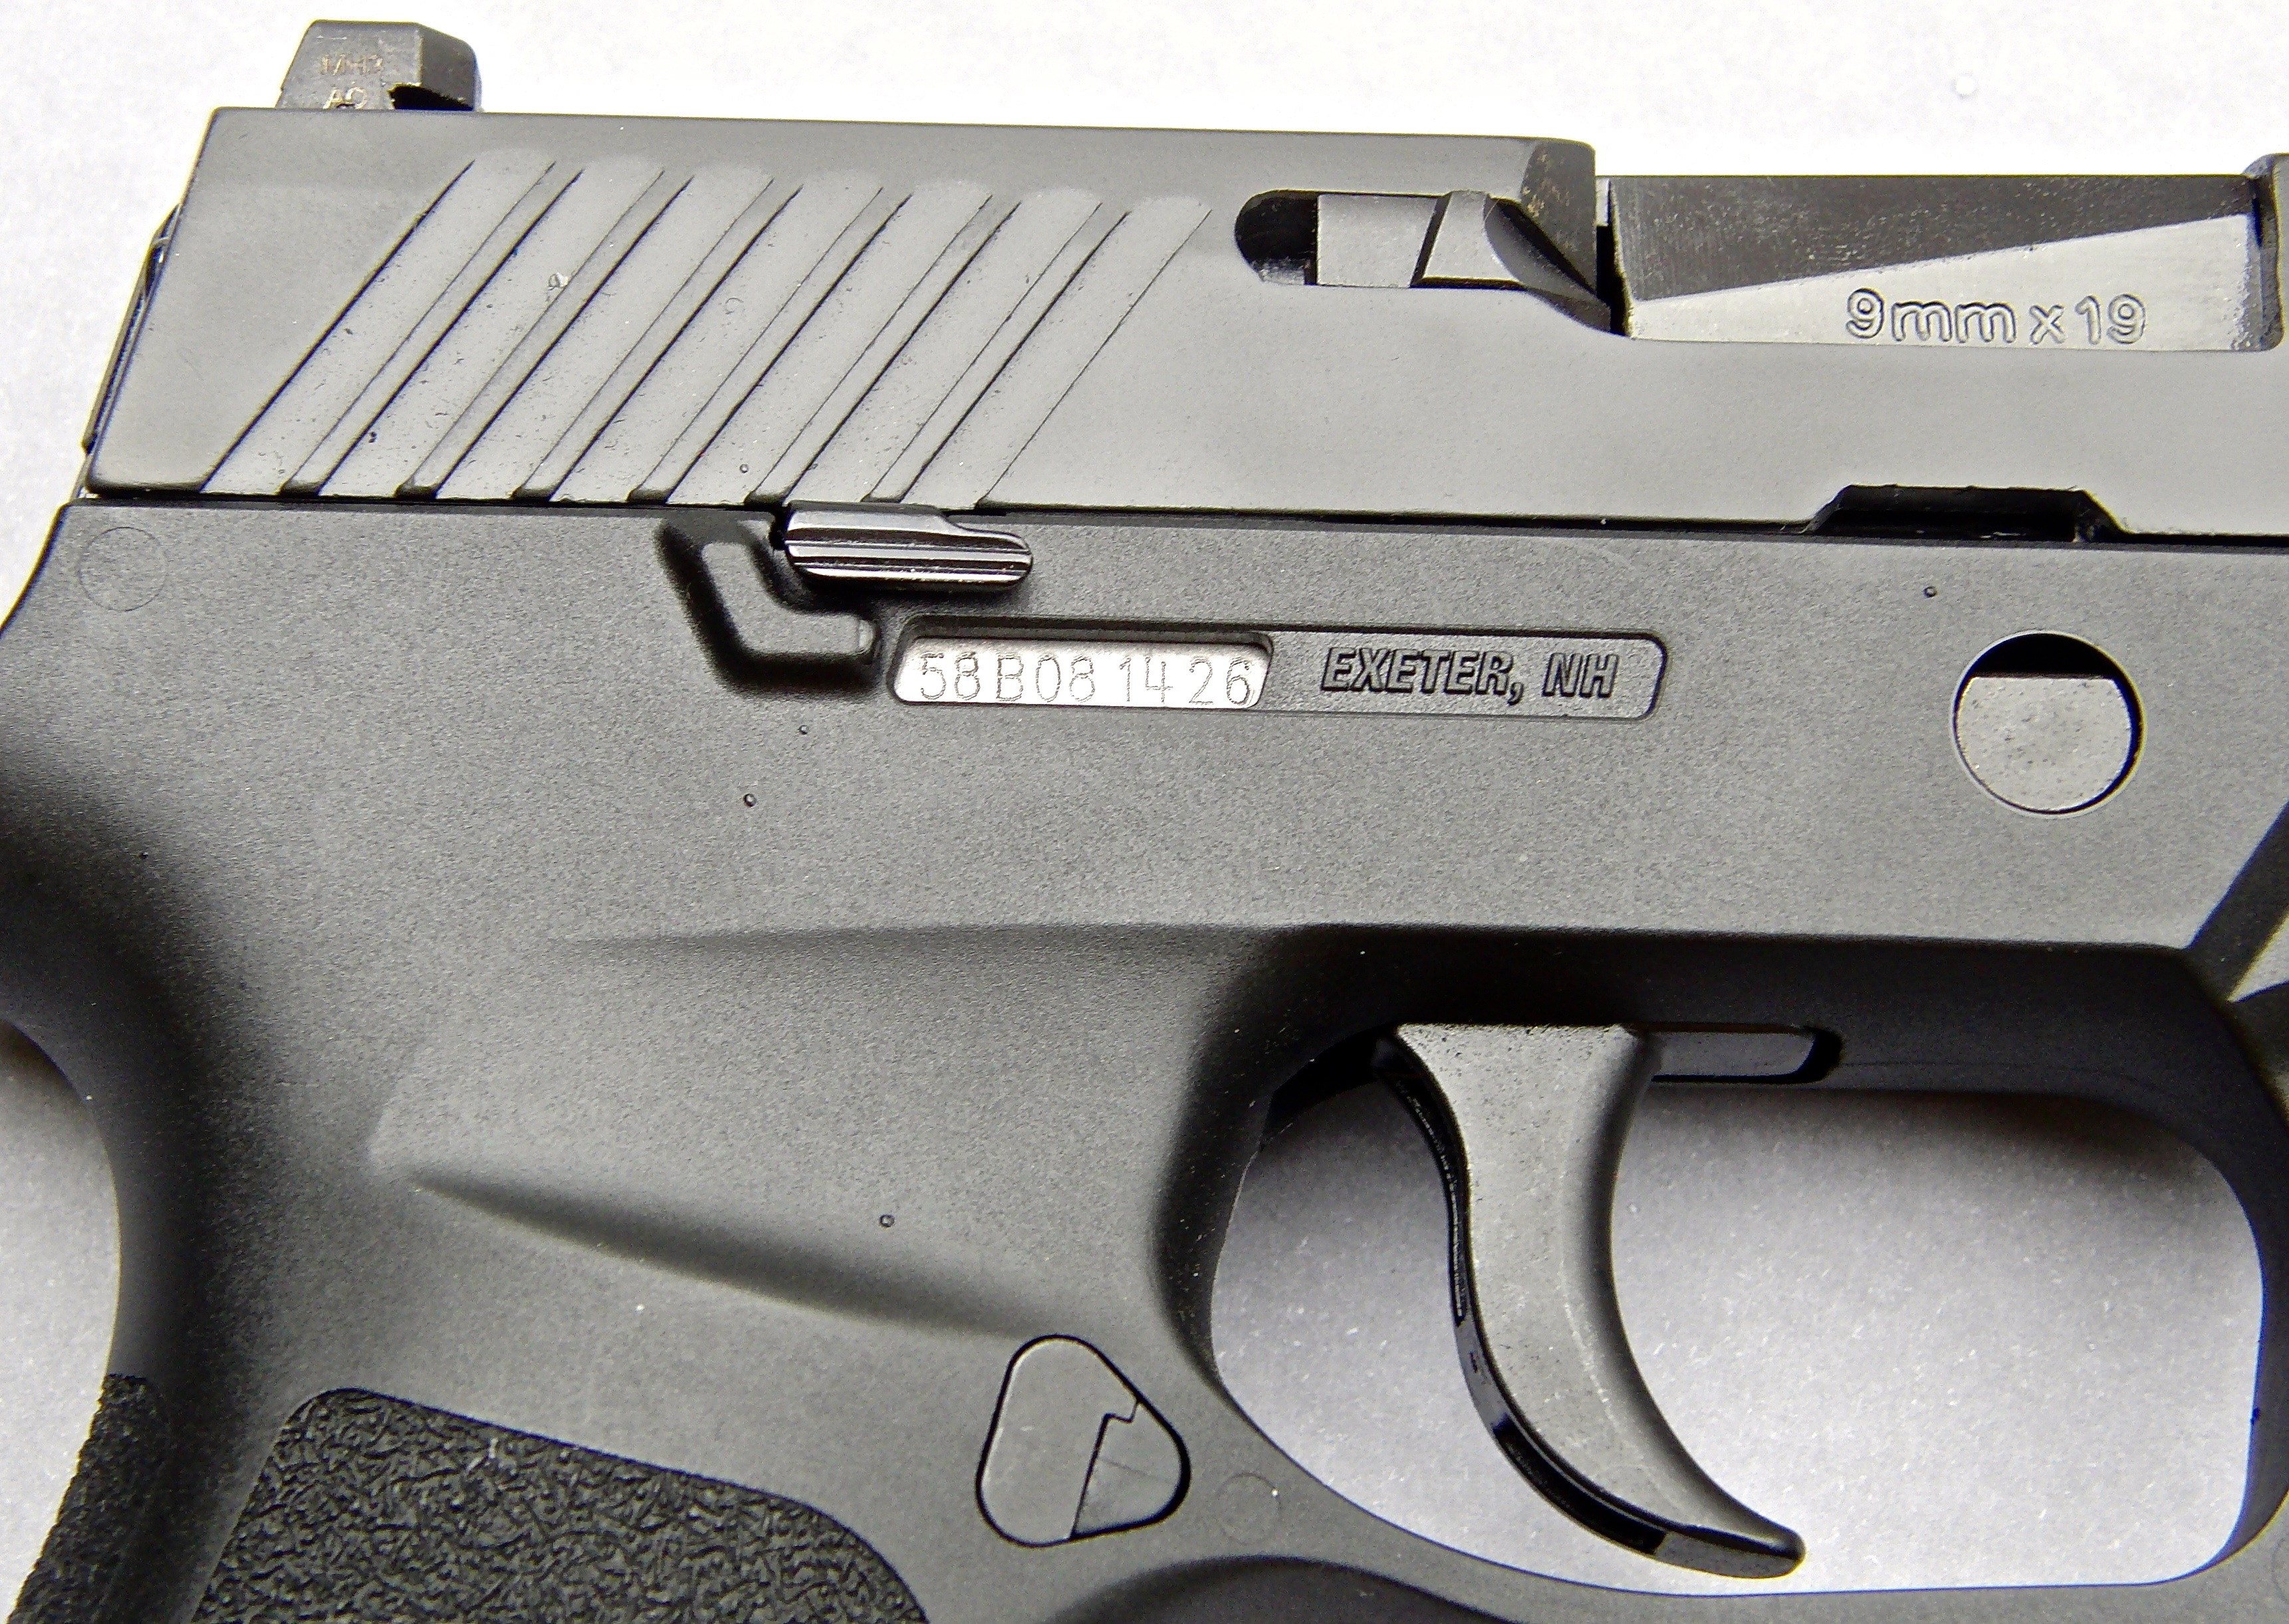 Modular Marvels: SIG Sauer P320 and P320 Compact Pistols